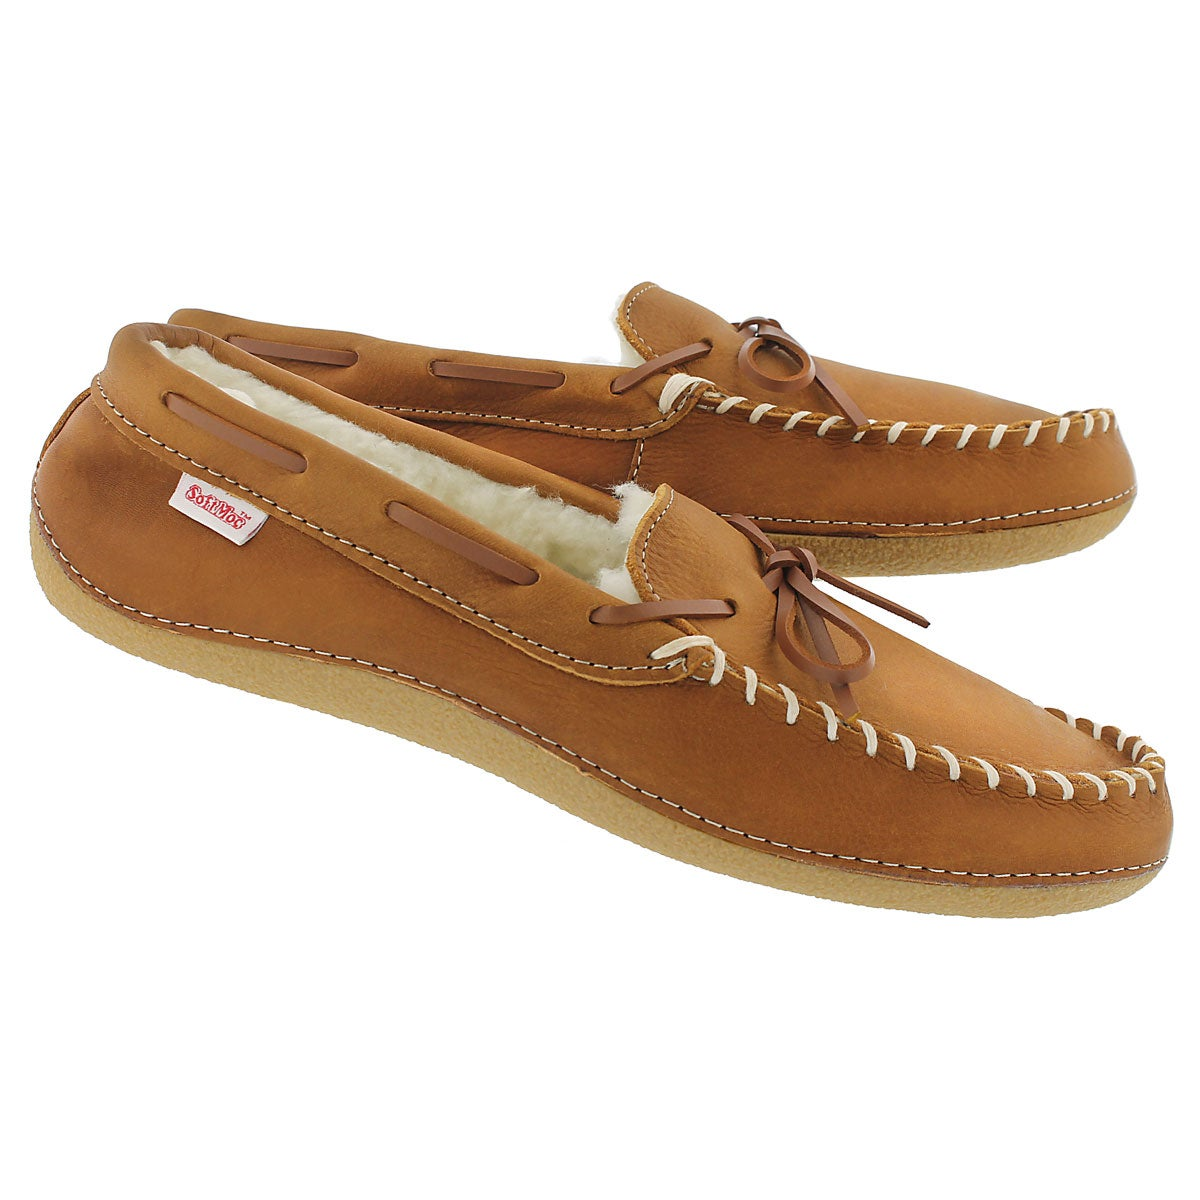 Mns Gary bark fleece lined lthr moc